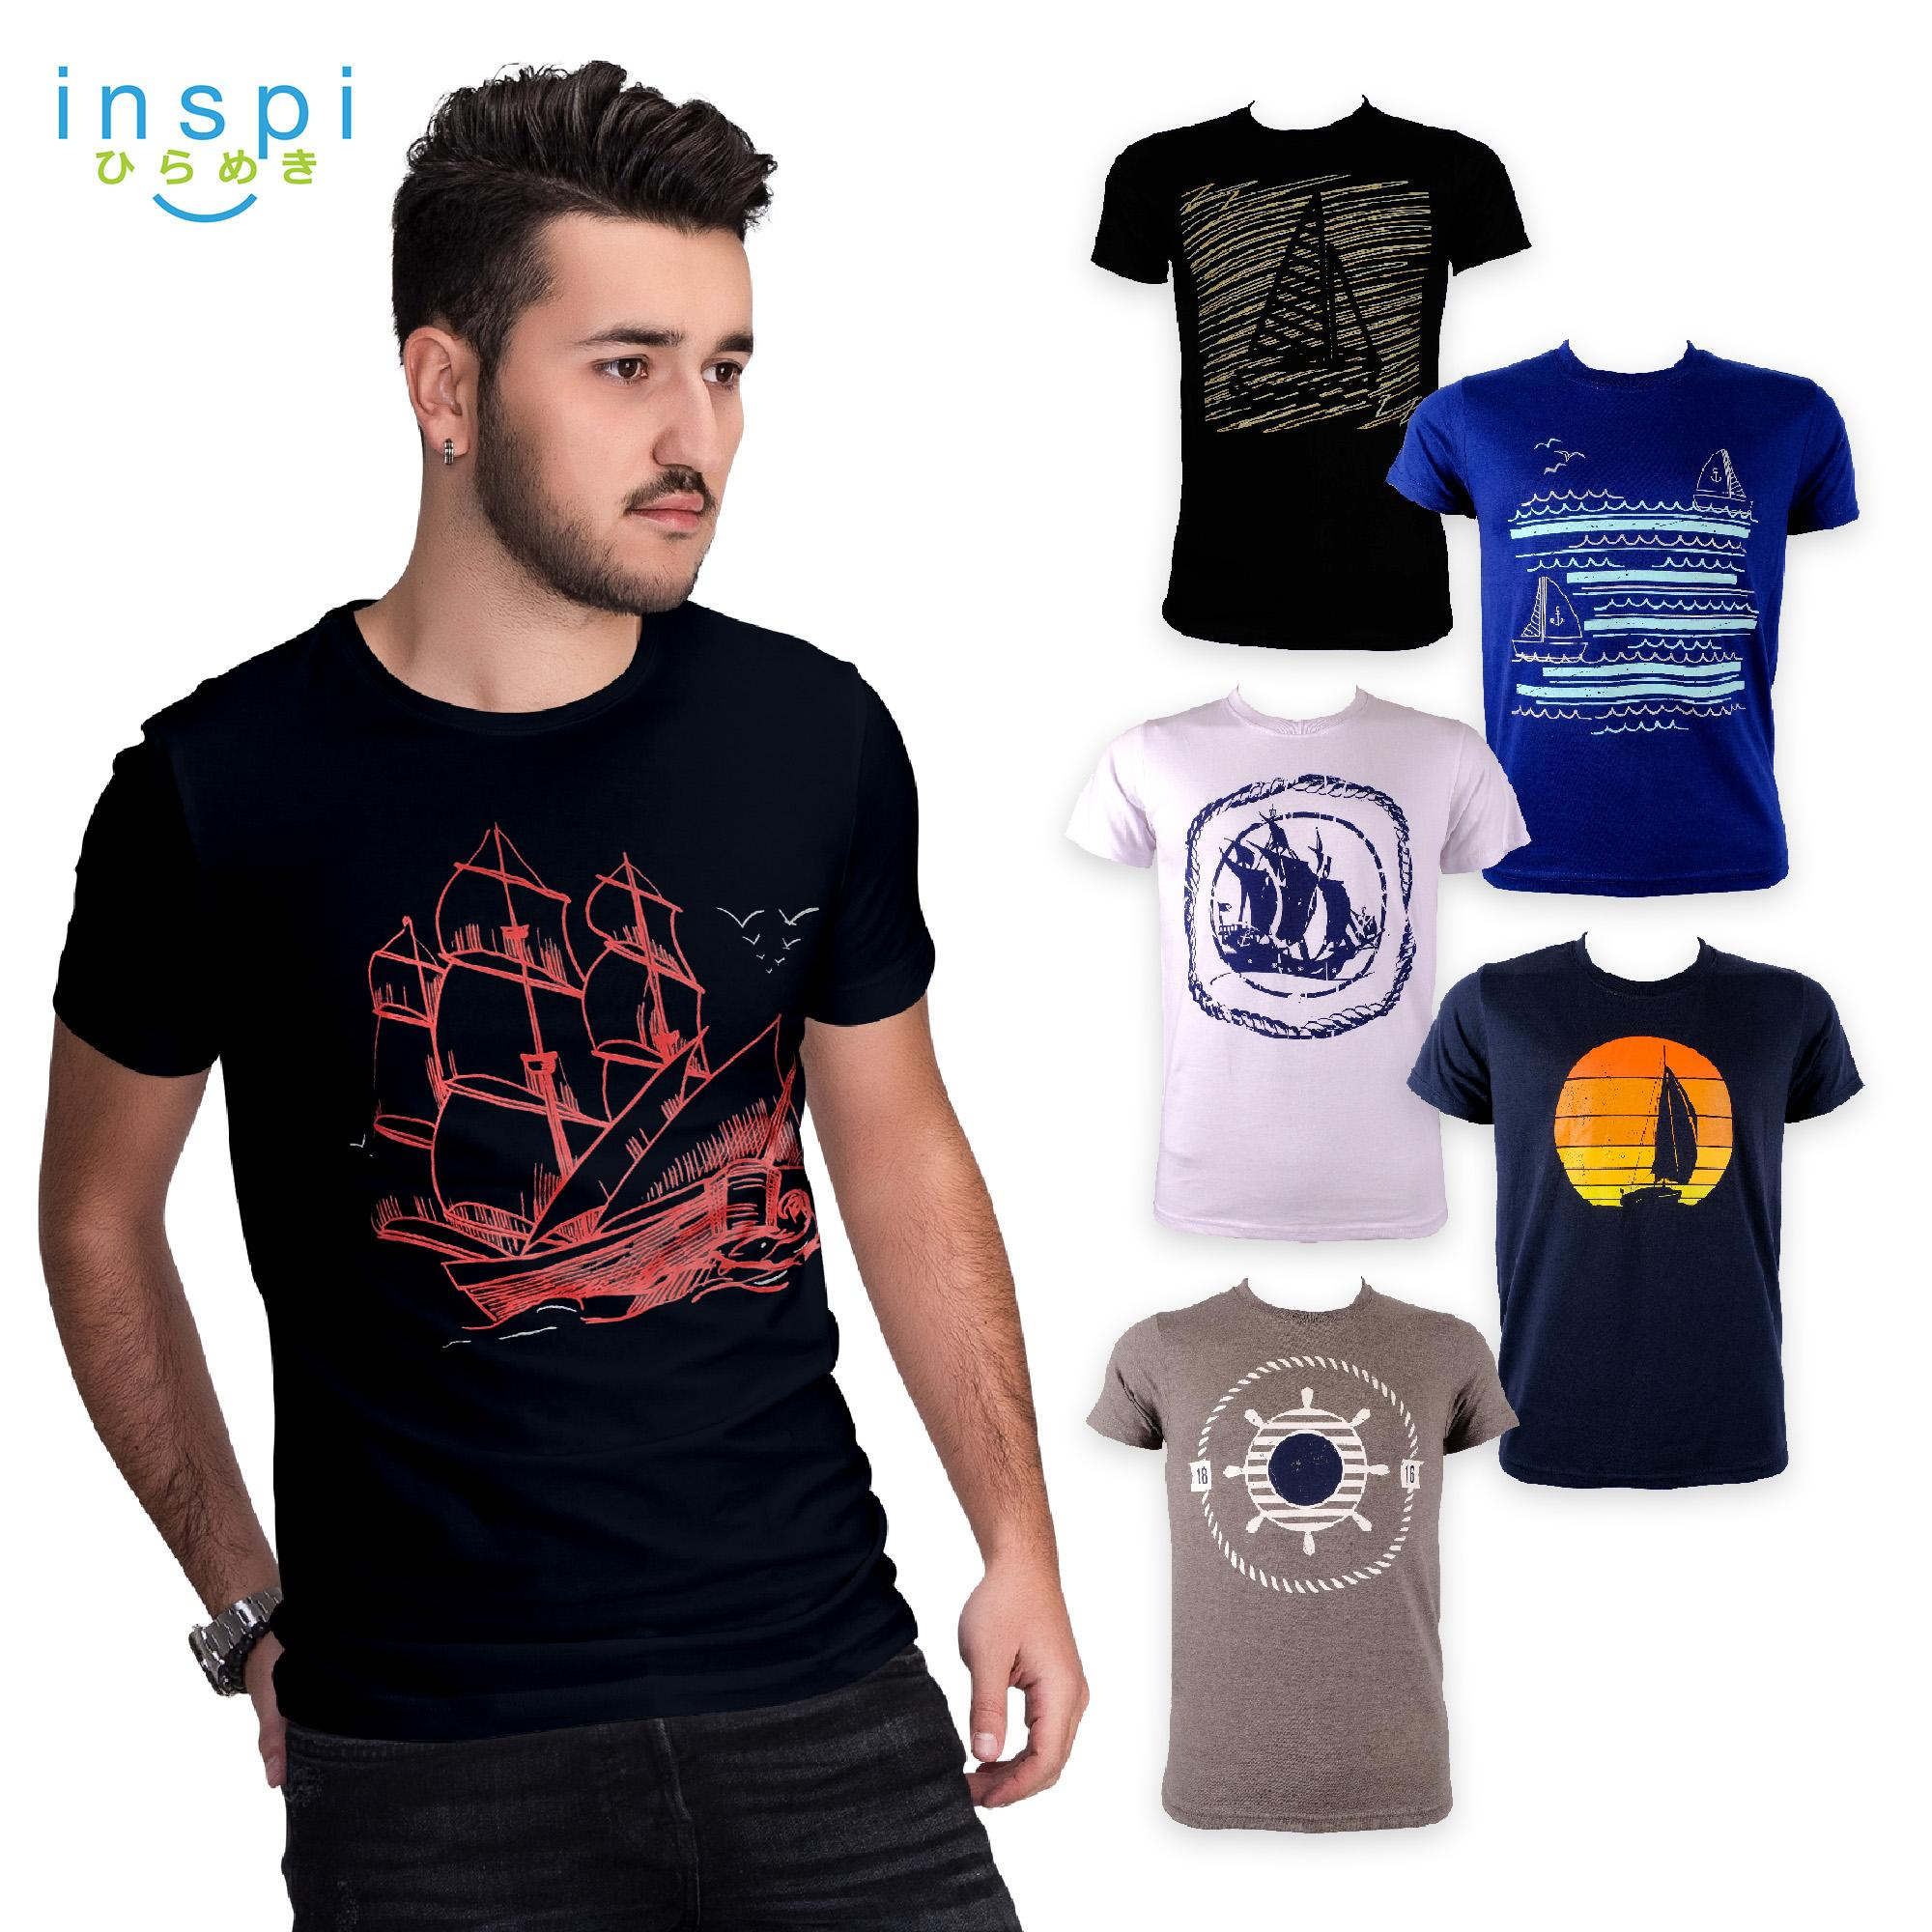 8e6438b1be INSPI Tees Sailing Collection tshirt printed graphic tee Mens t shirt shirts  for men tshirts sale